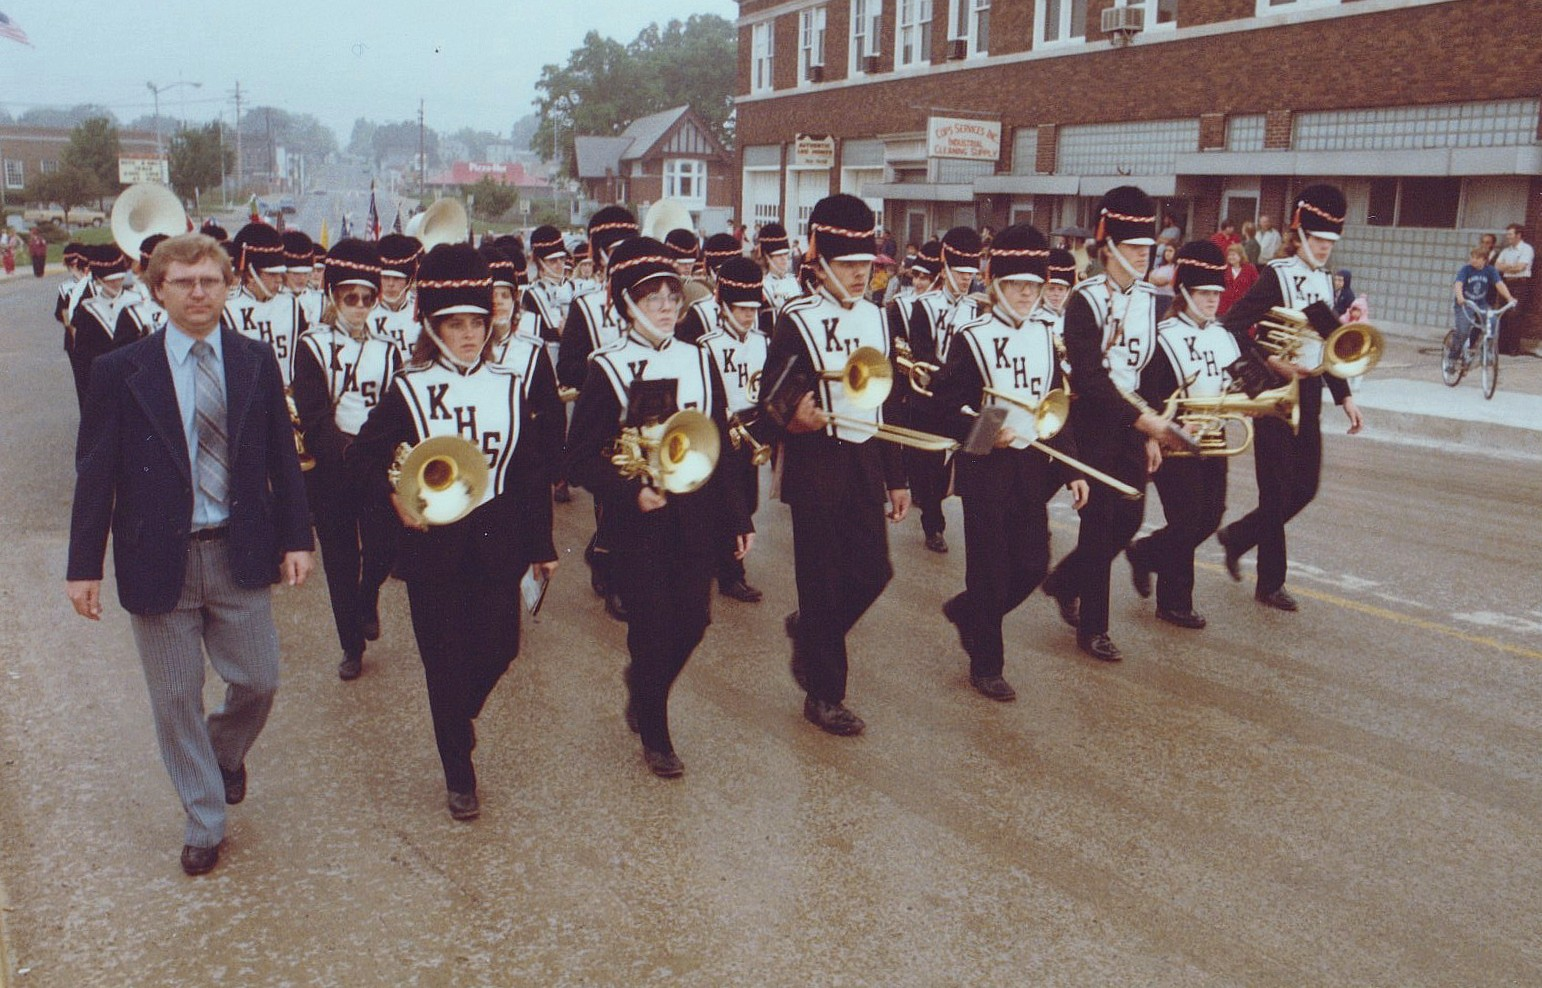 Band director LaVern Lorbiecki leads the Kaukauna High School marching band during the 1984. Memorial Day Parade. Photo by Dan Plutchak.